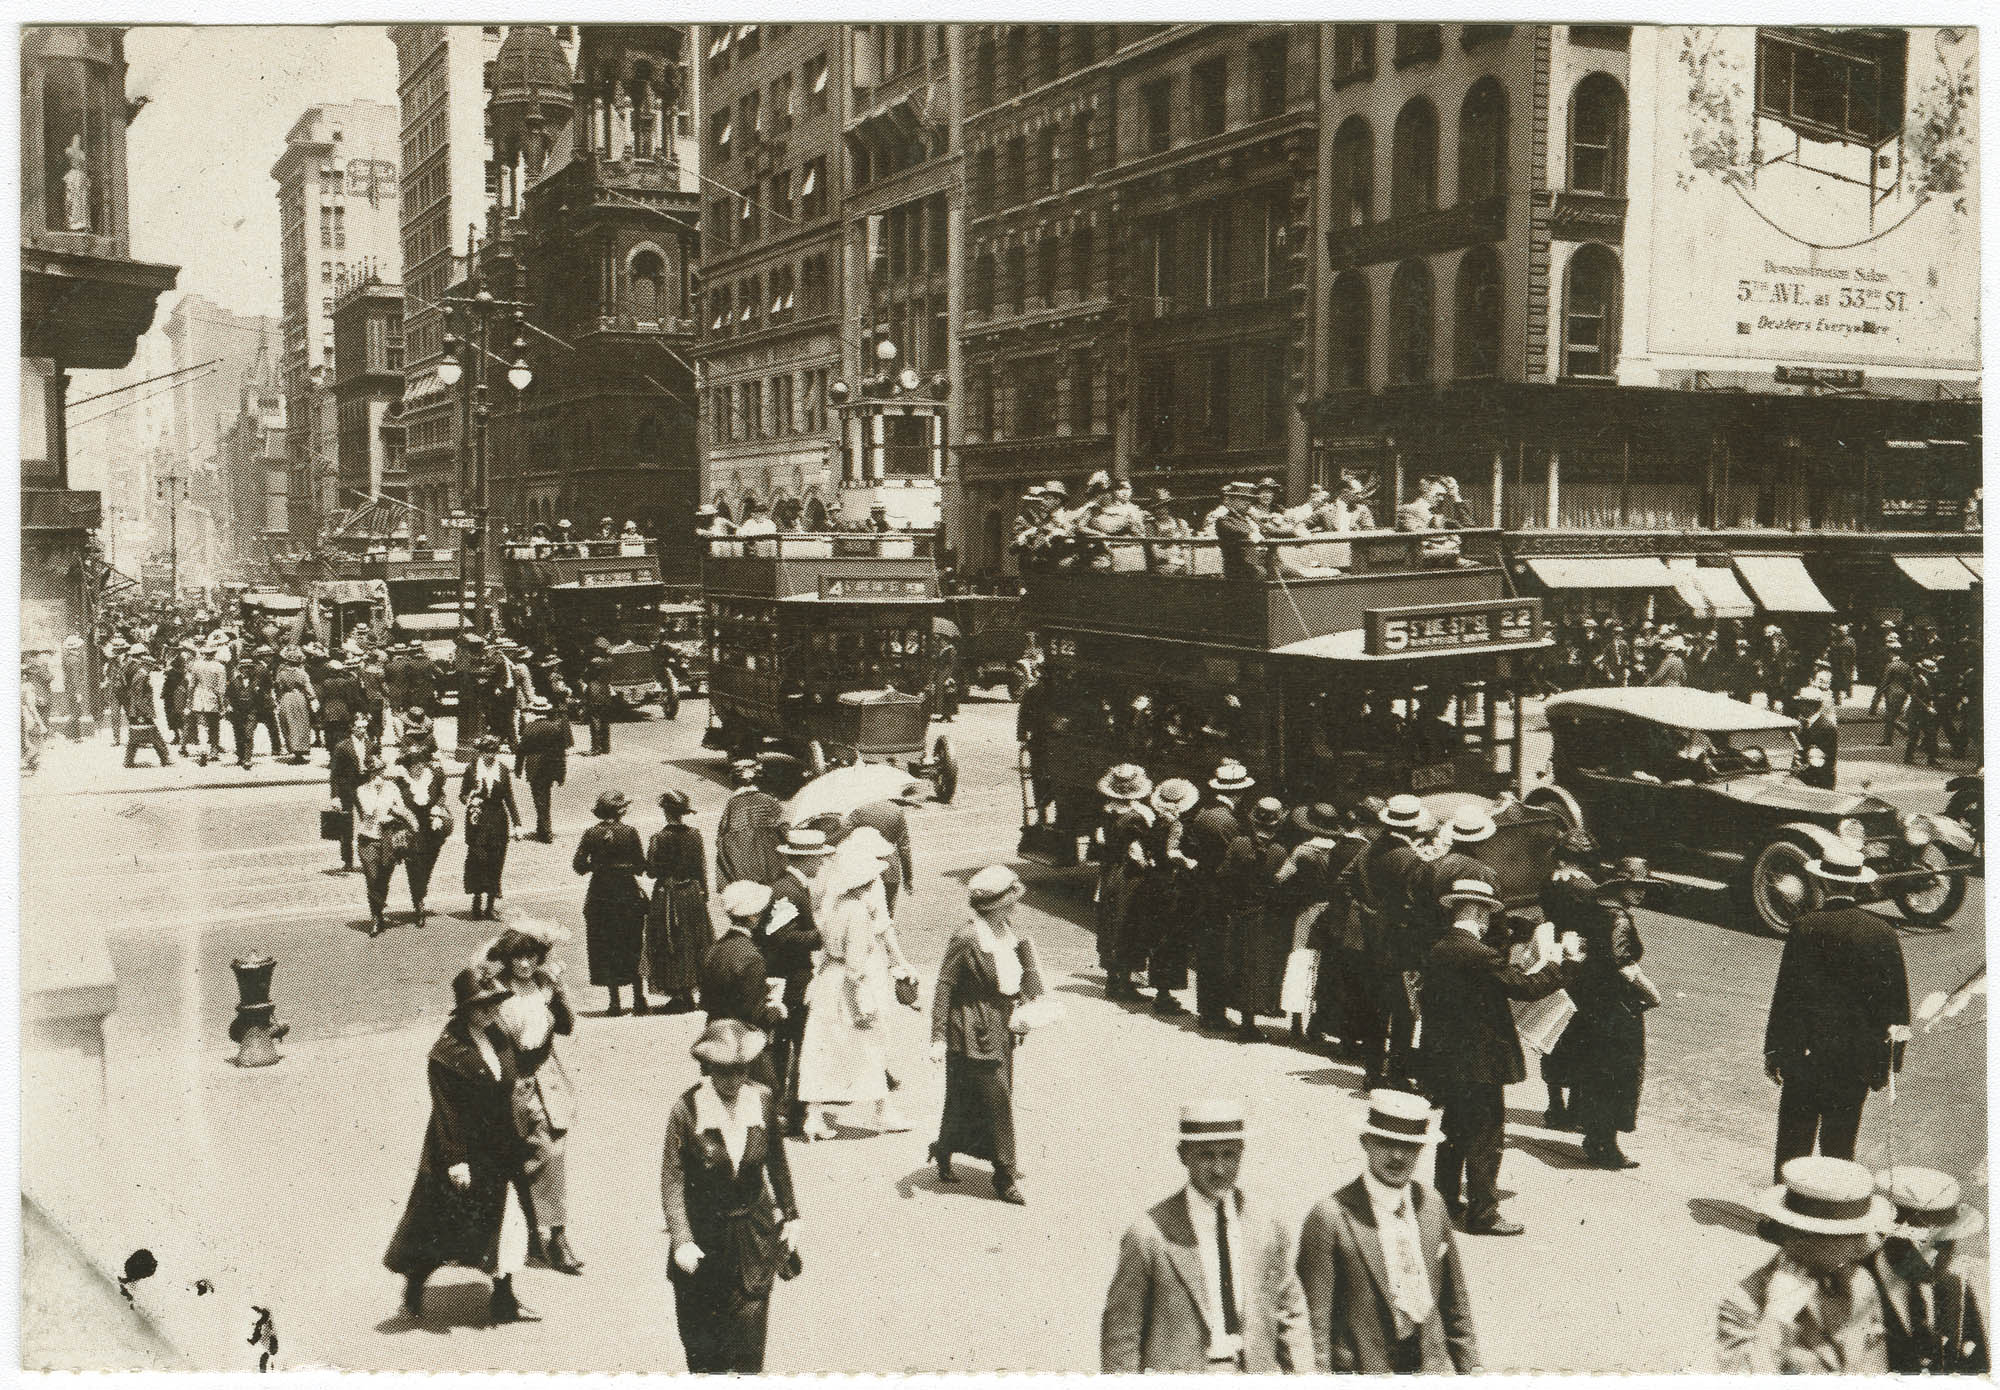 Corner of 5th Ave. and 42nd St., with the old Temple Emanu-El in the background, 1920